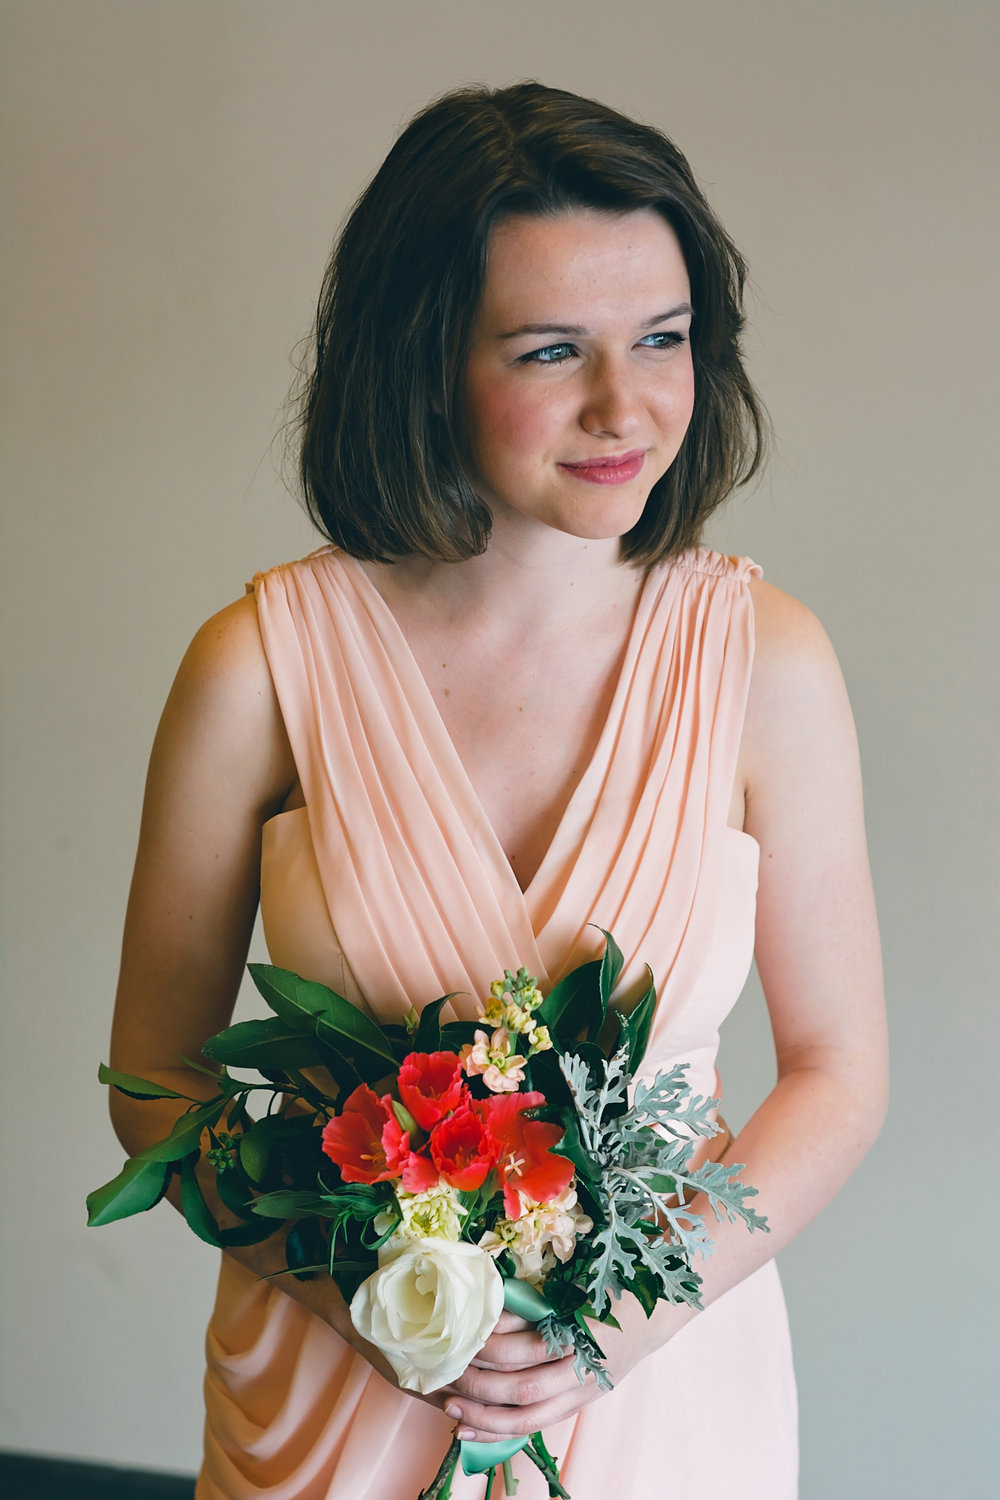 Interview with Jenna of Gold + Bloom Floral Design by Paper Swallow Events #wedding #floraldesign